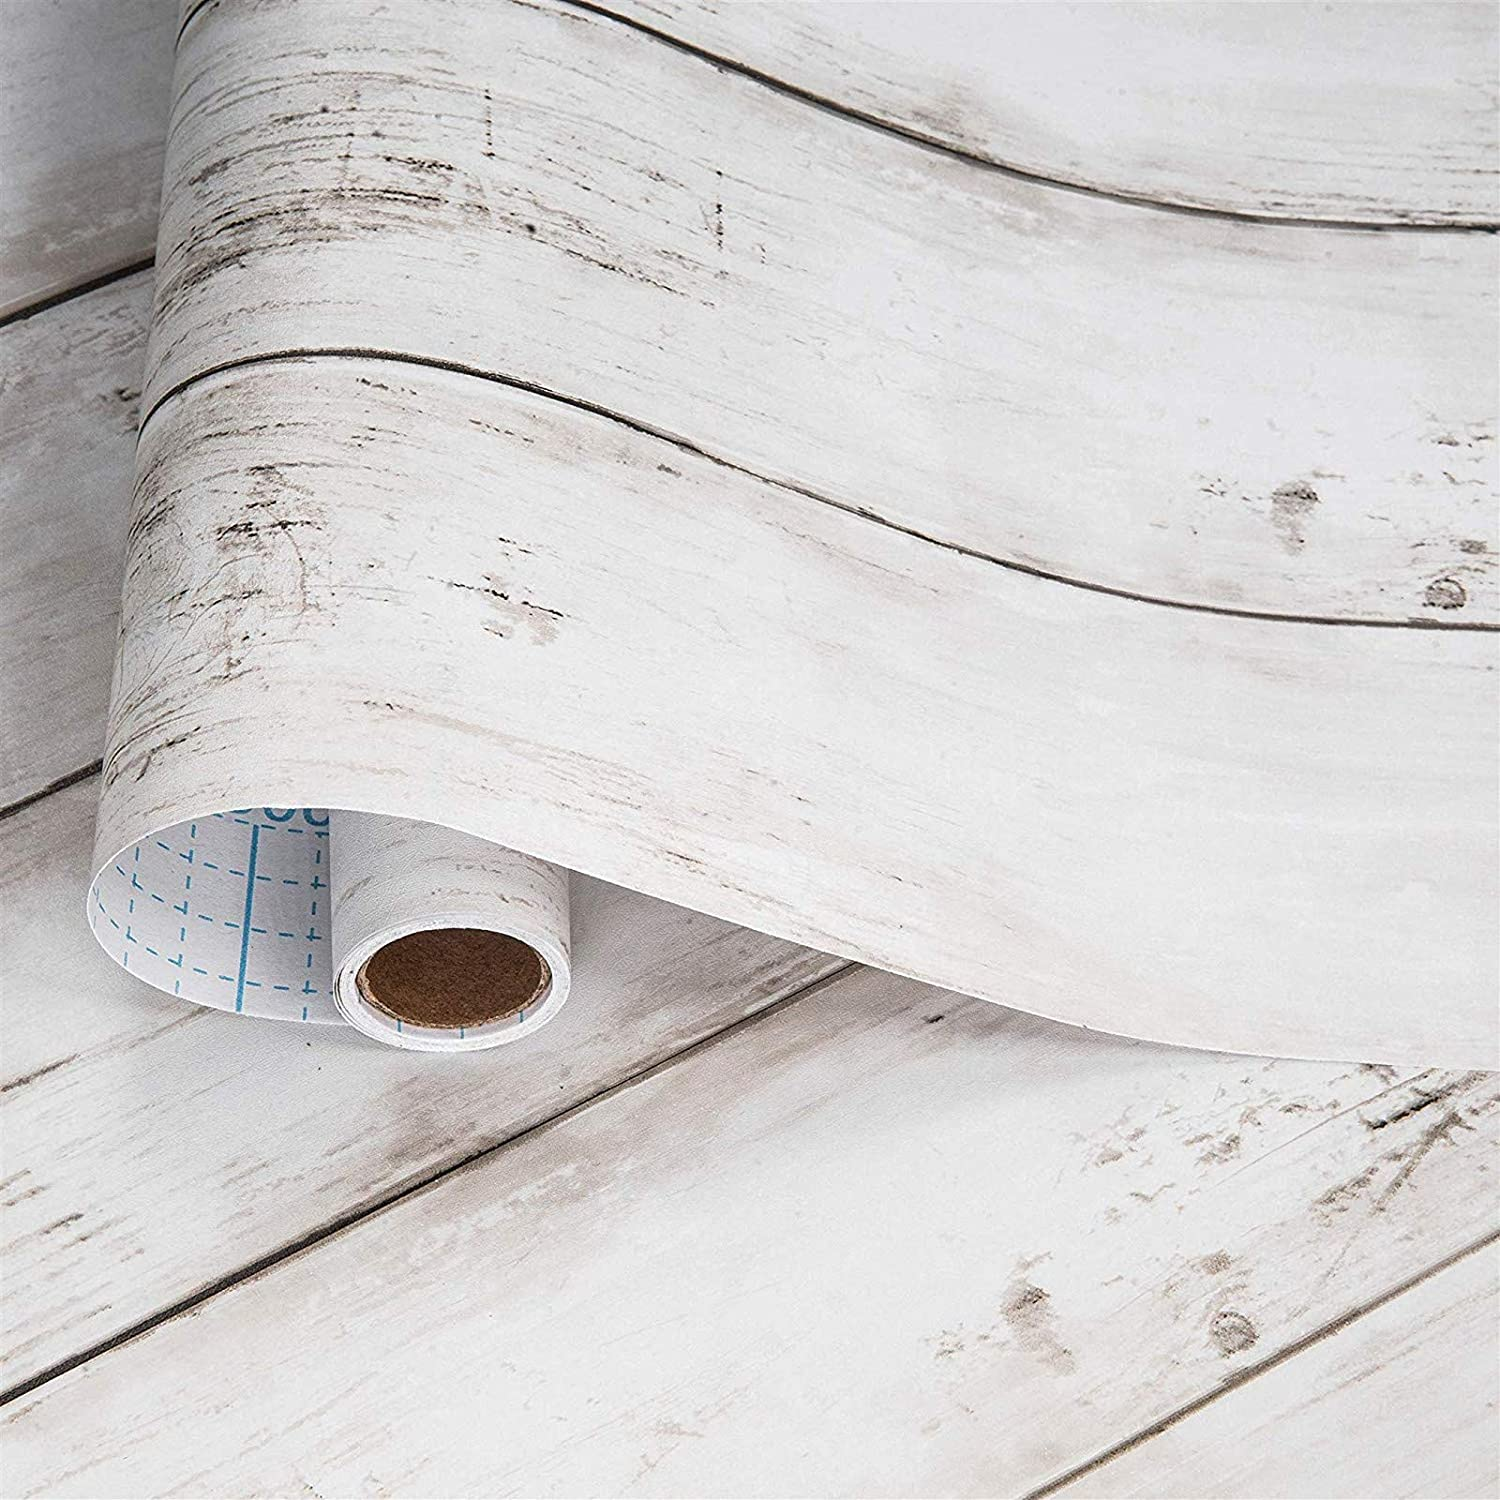 """White Gray Wood Wallpaper 17.71"""" X 118"""" Peel and Stick Removable Decorative Vintage Wood Grey Plank Wall Paper Self-Adhesive Interior Vinyl Film Shiplap for Home Decoration"""